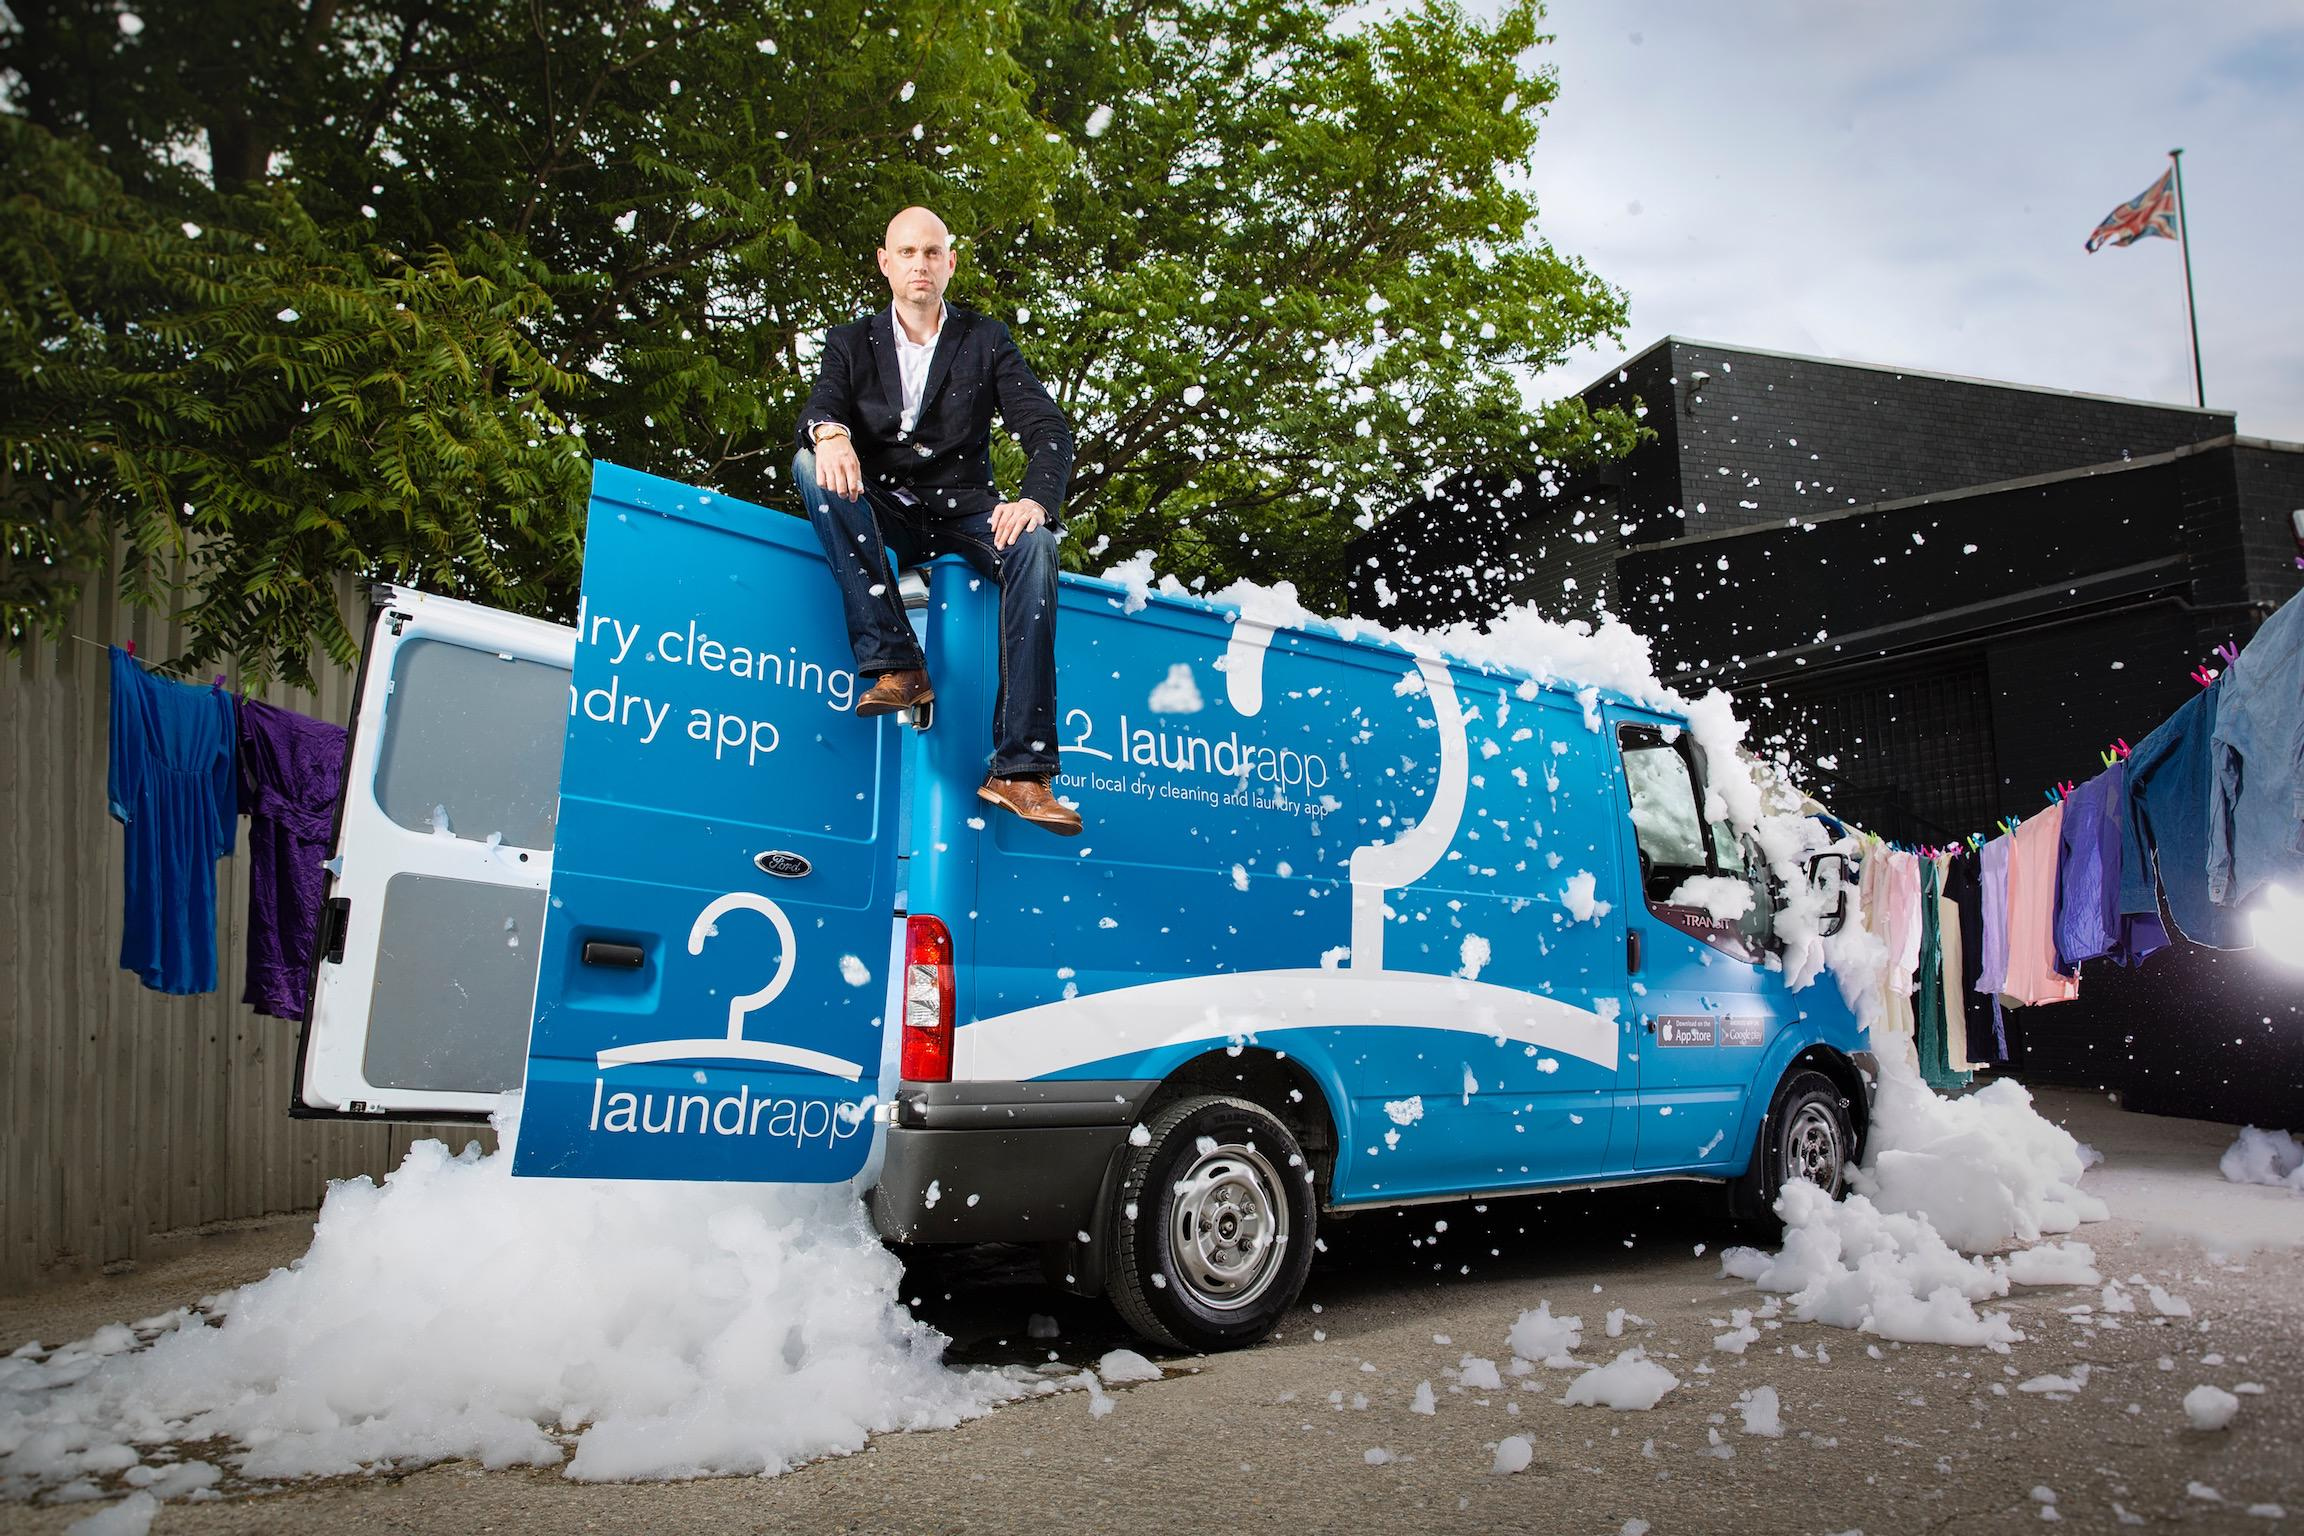 How Is Laundrapp Disrupting the Traditional Laundry Market